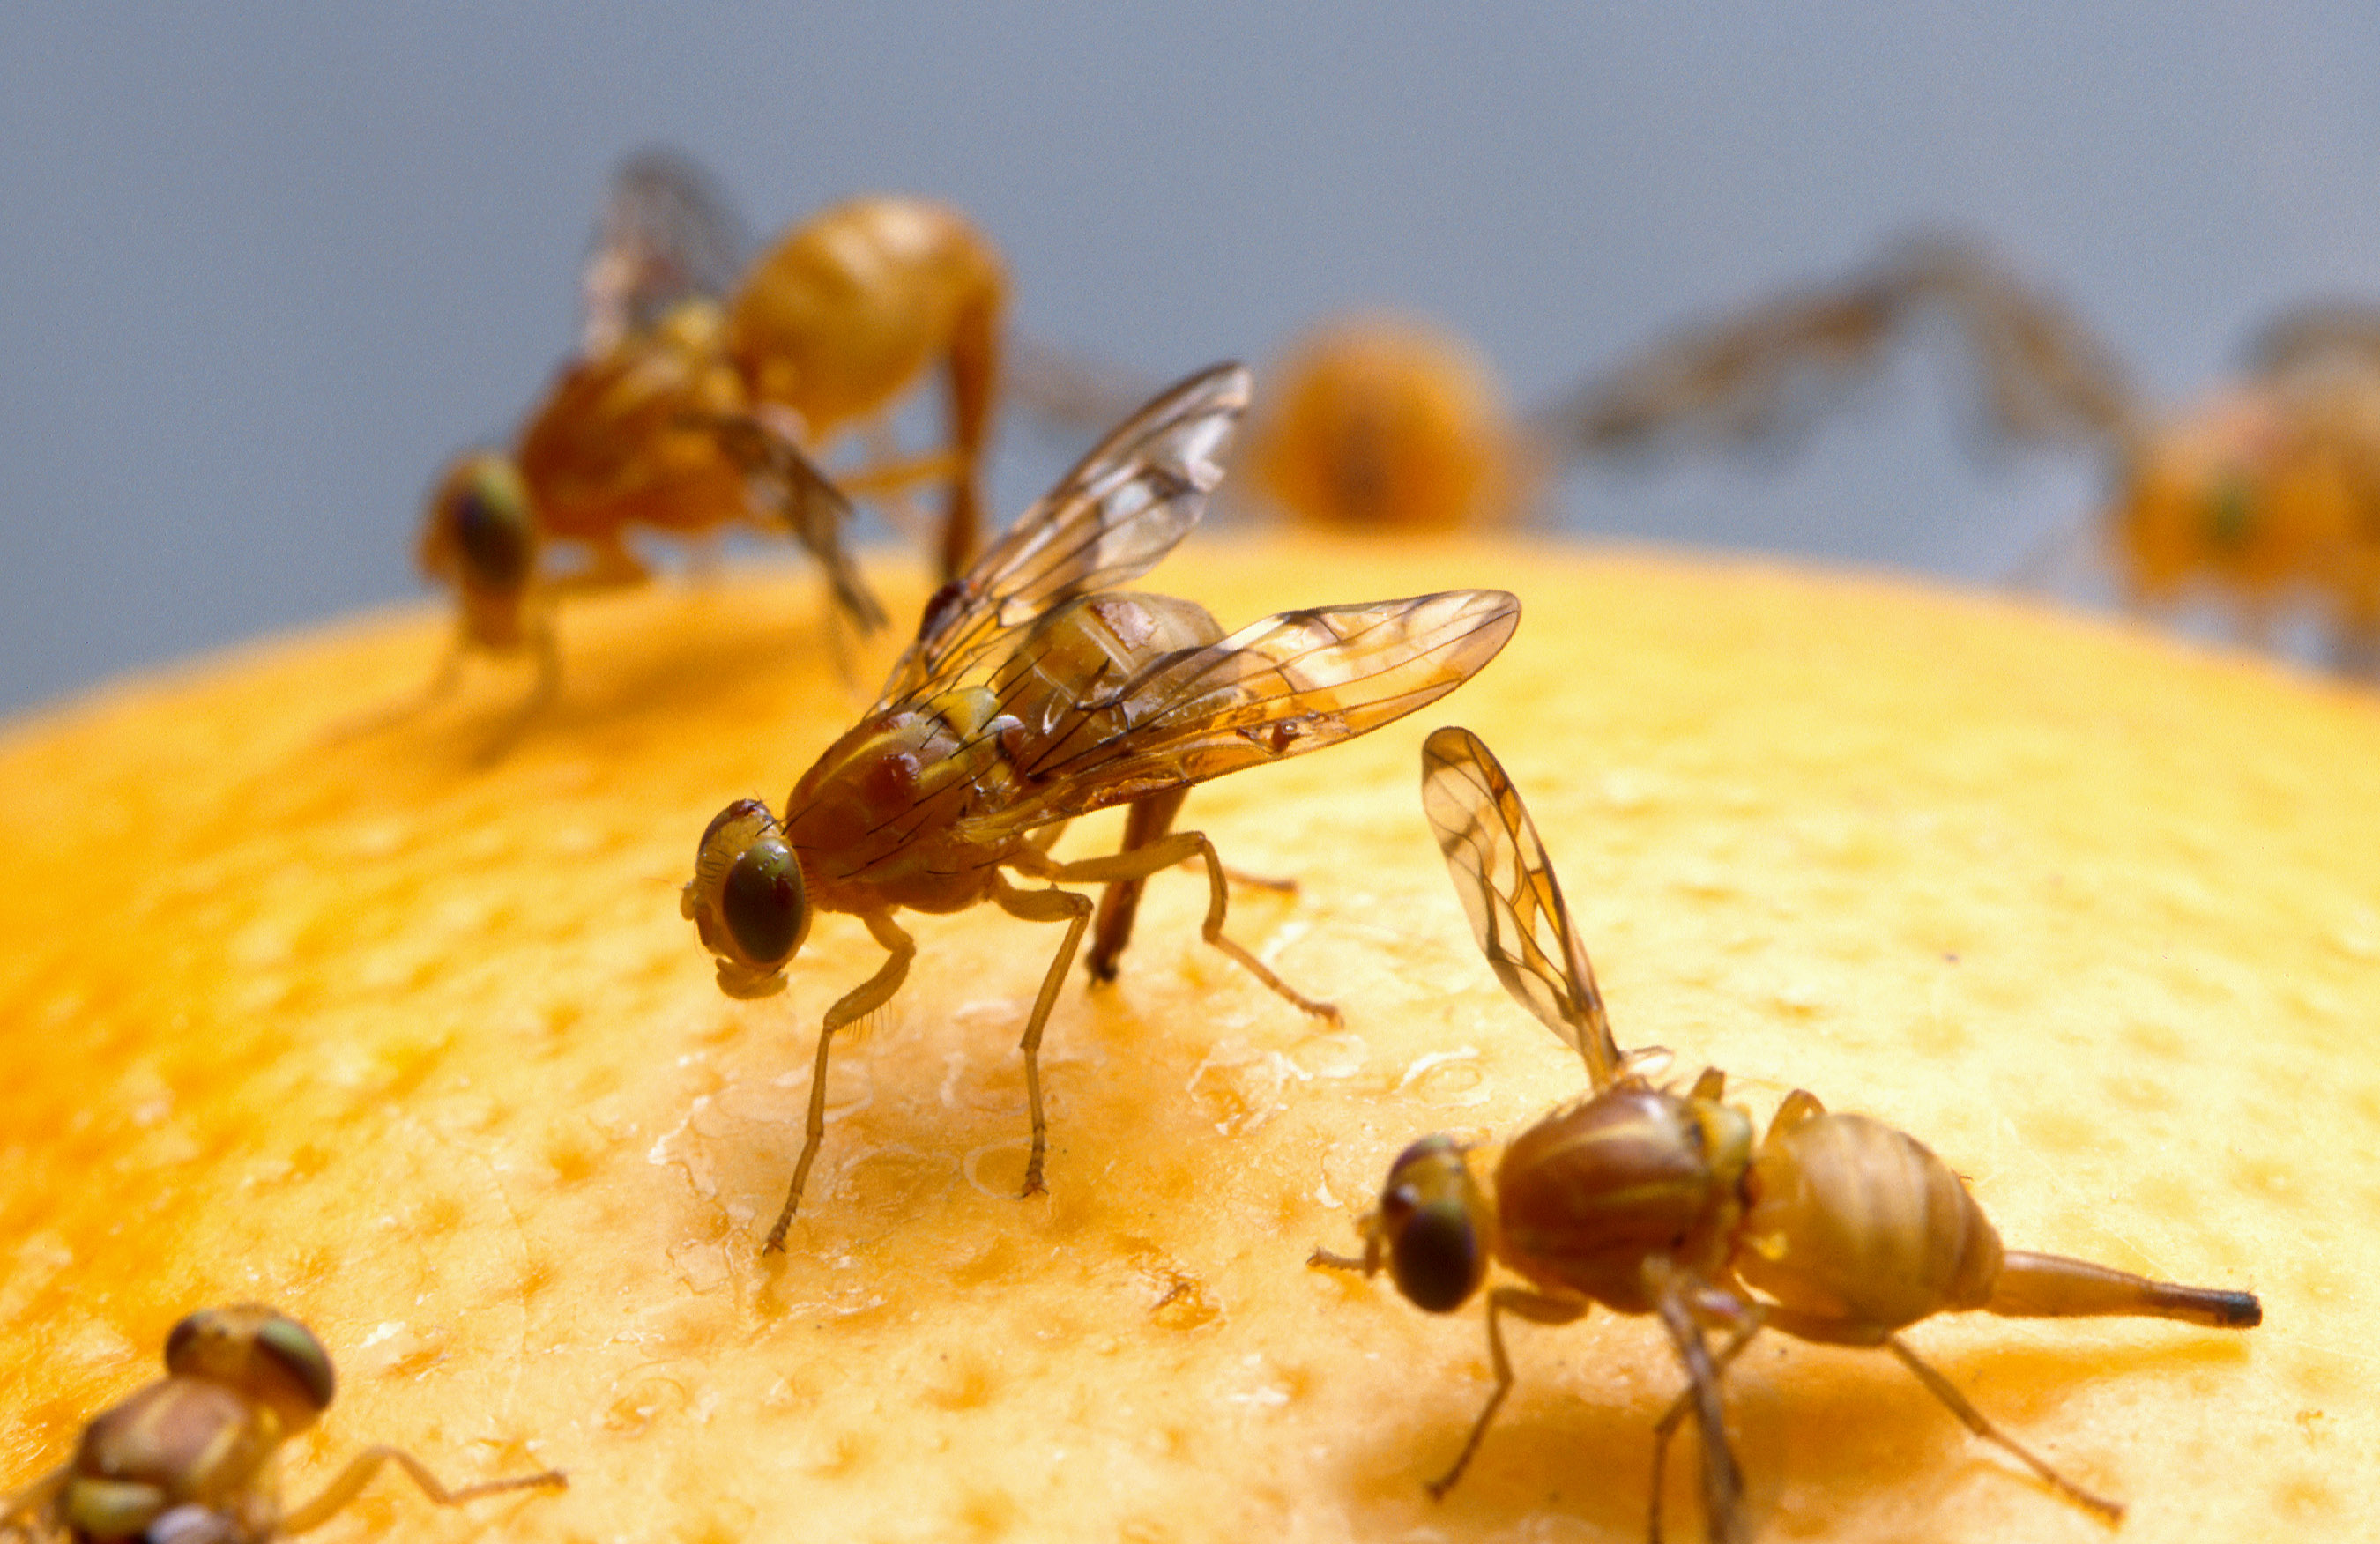 Female Mexican fruit fly